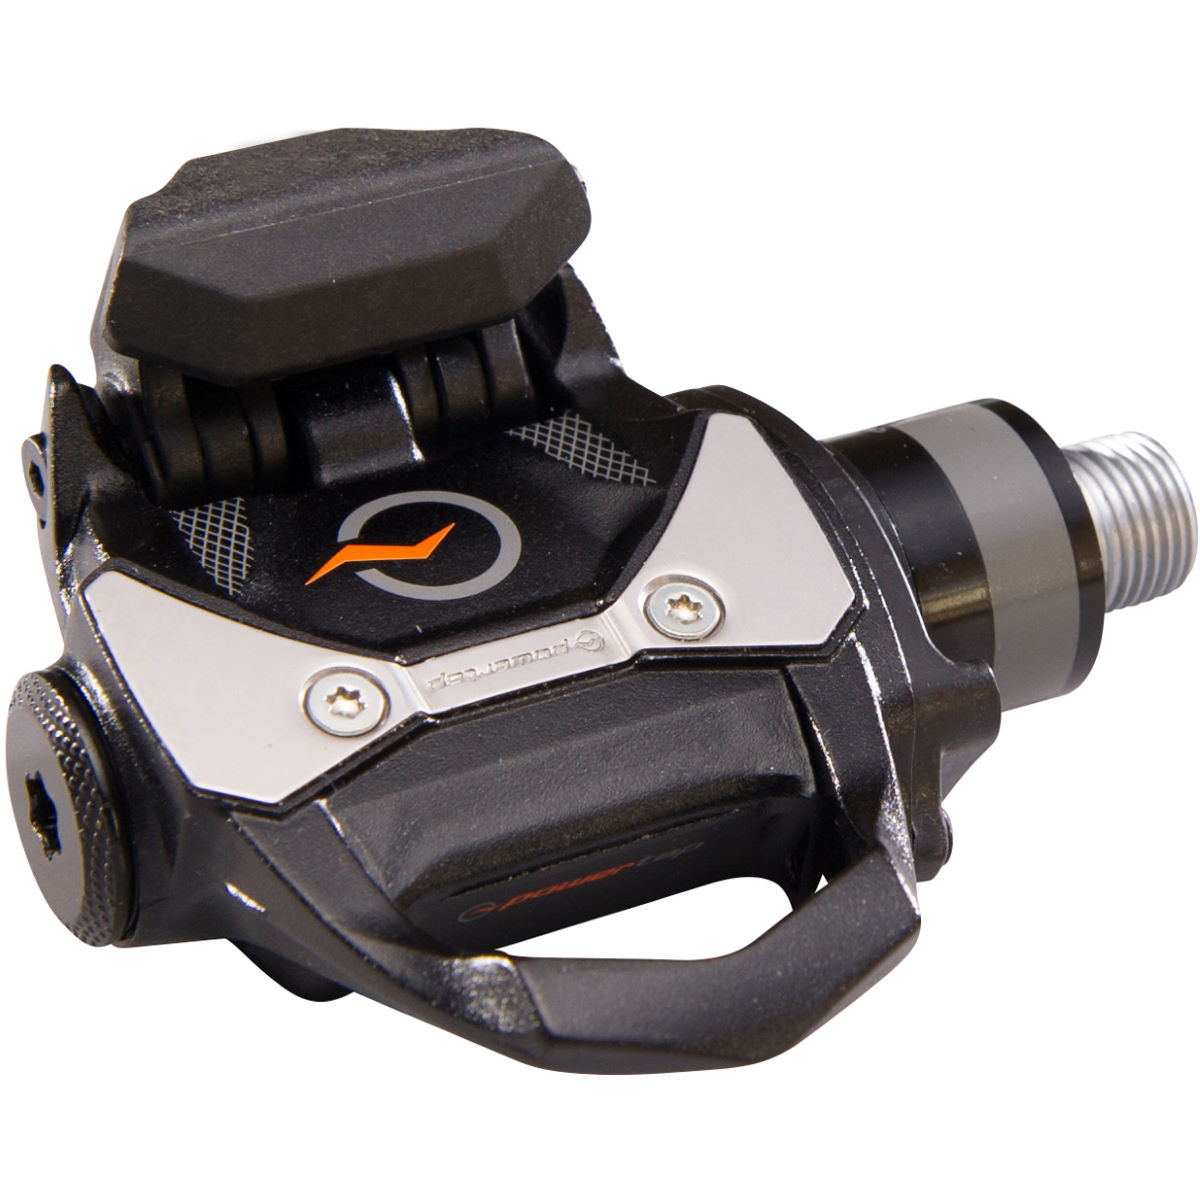 תוצאת תמונה עבור ‪Powertap P1S Pedal Power Meter Set‬‏